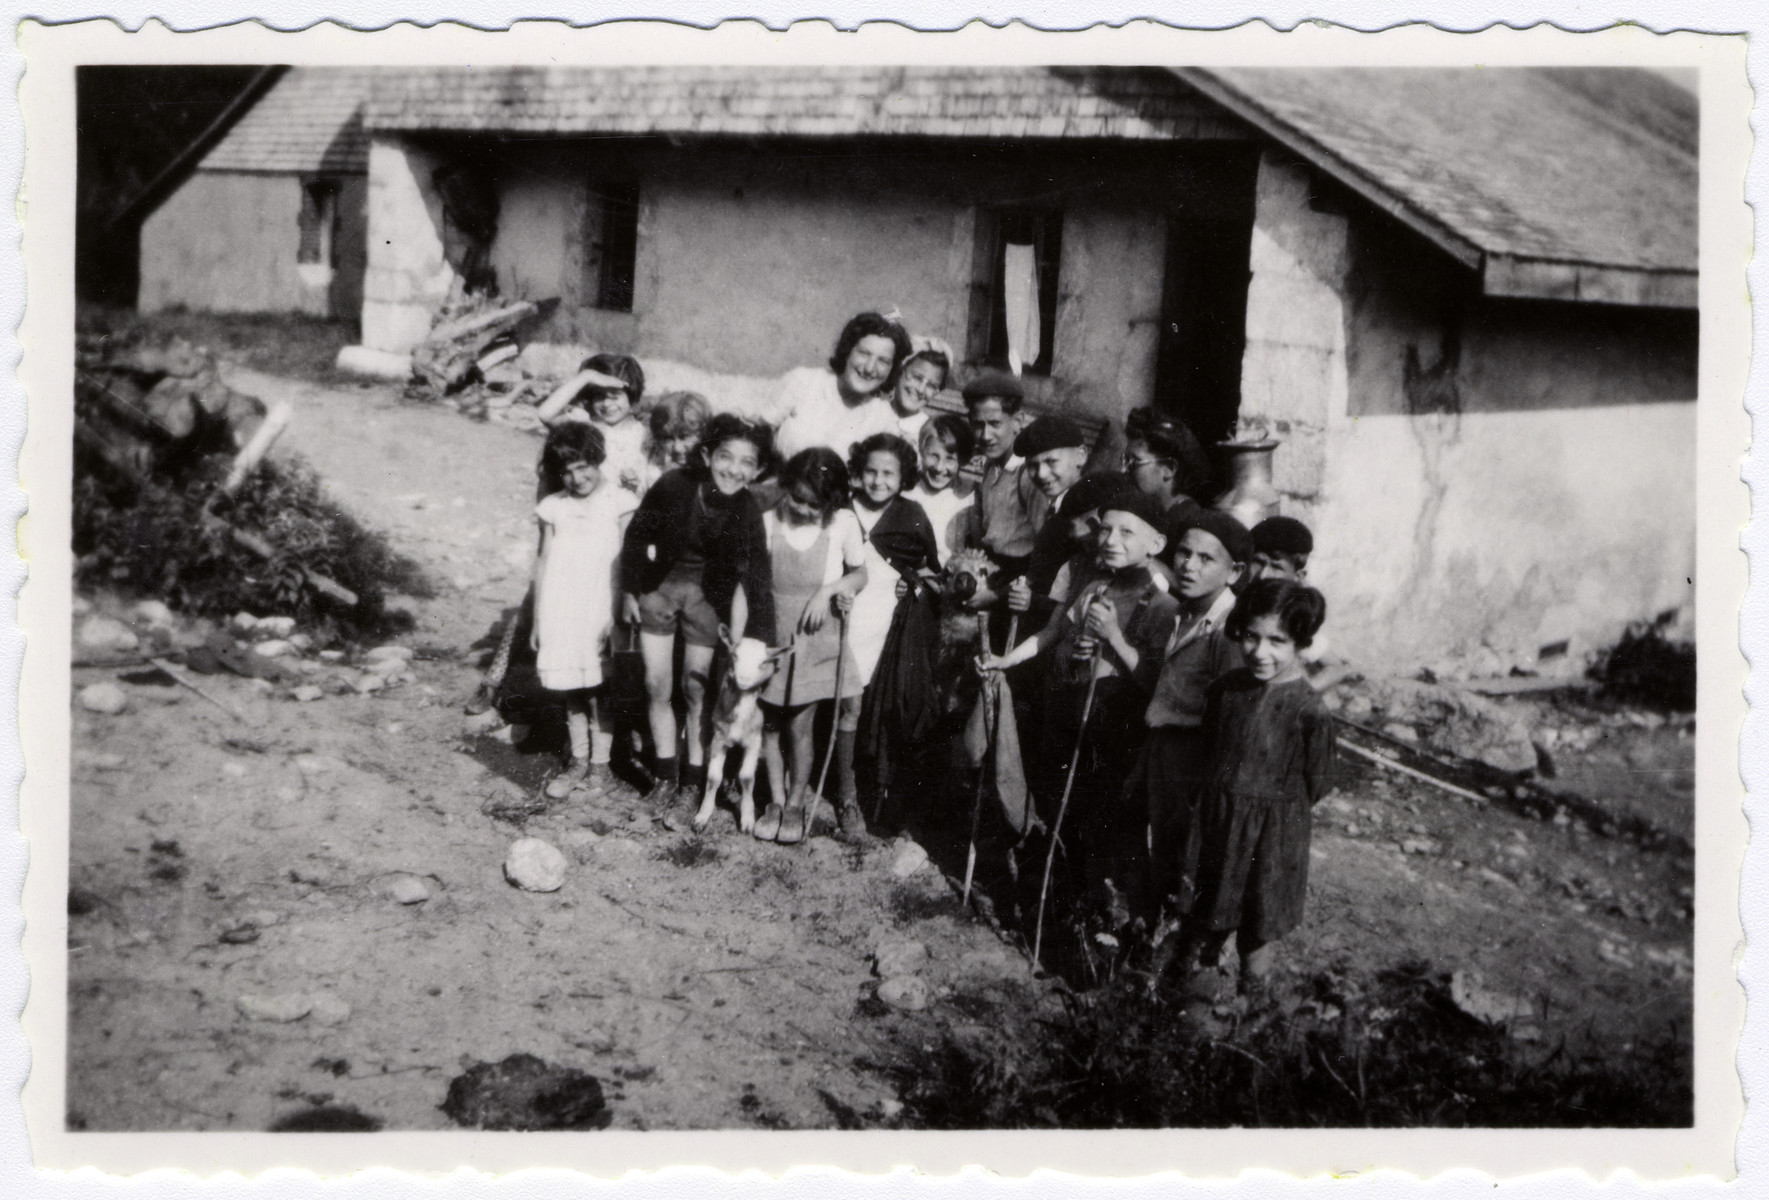 Denise Bloch poses with a group of children in her care [possibly in Perrigueux].